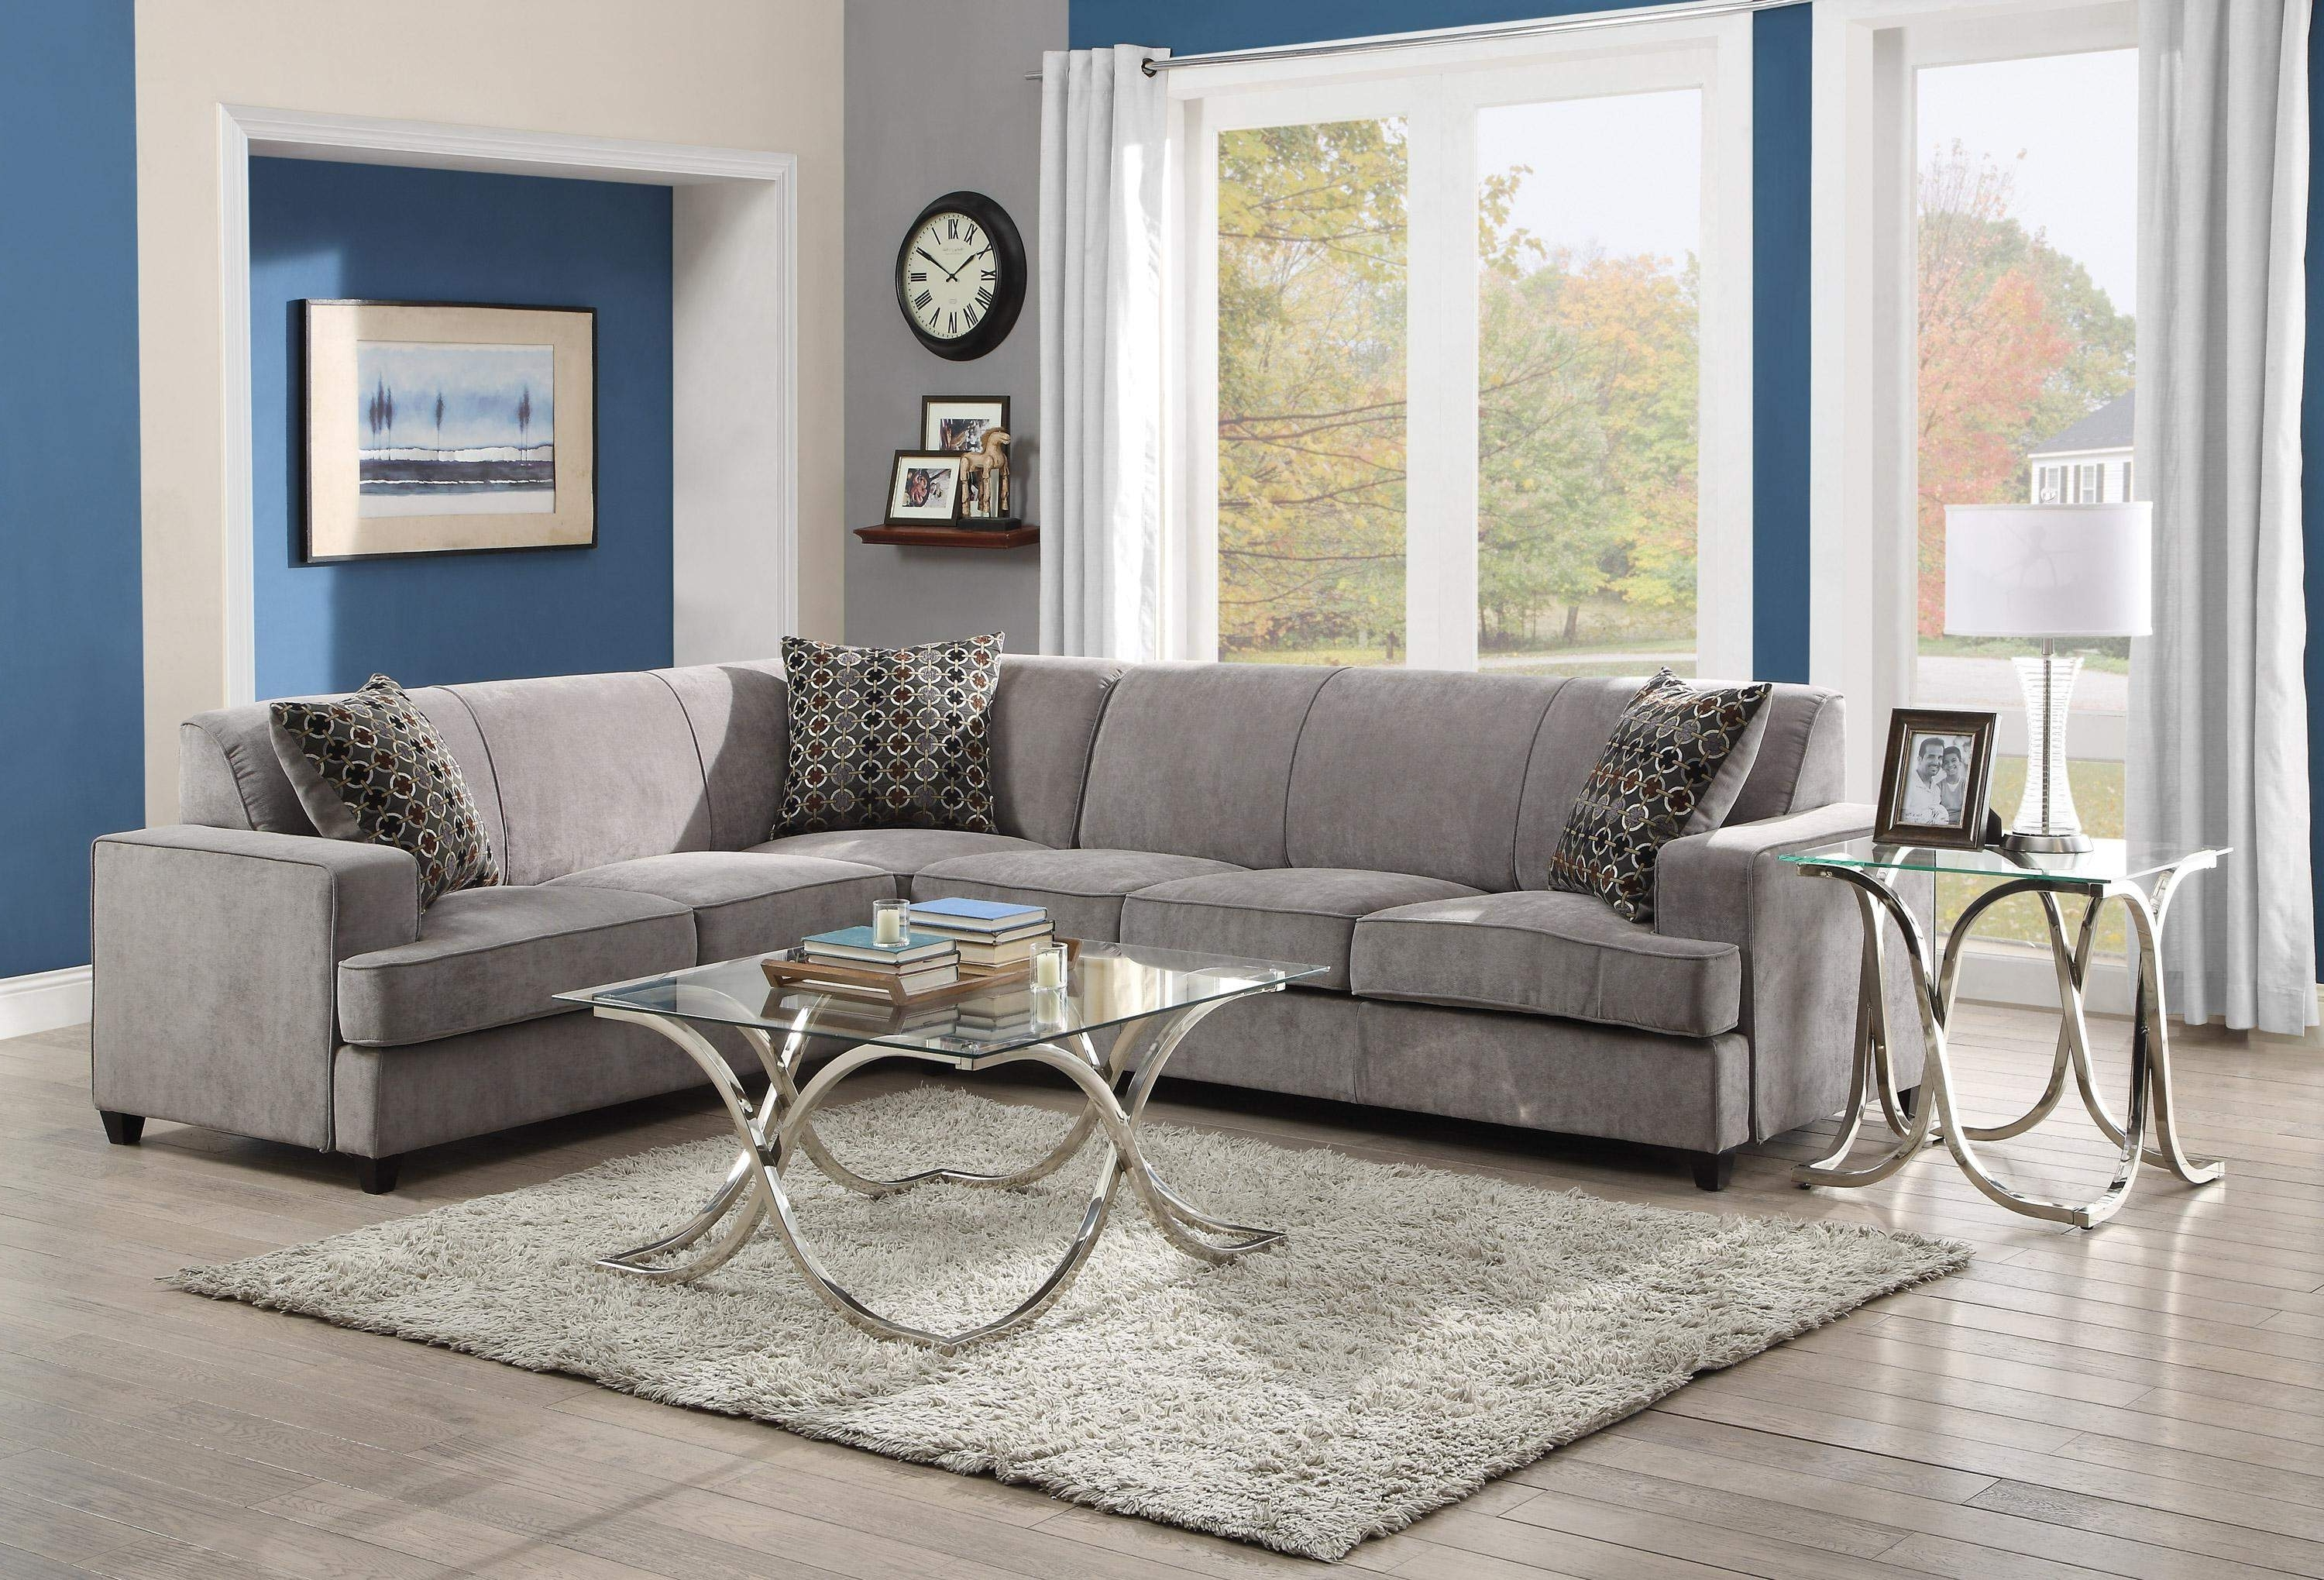 Sectional Sofas With Queen Size Sleeper Throughout 2019 Tess Casual Grey Fabric Sectional Sofa For Corners With Queen Size (View 16 of 20)